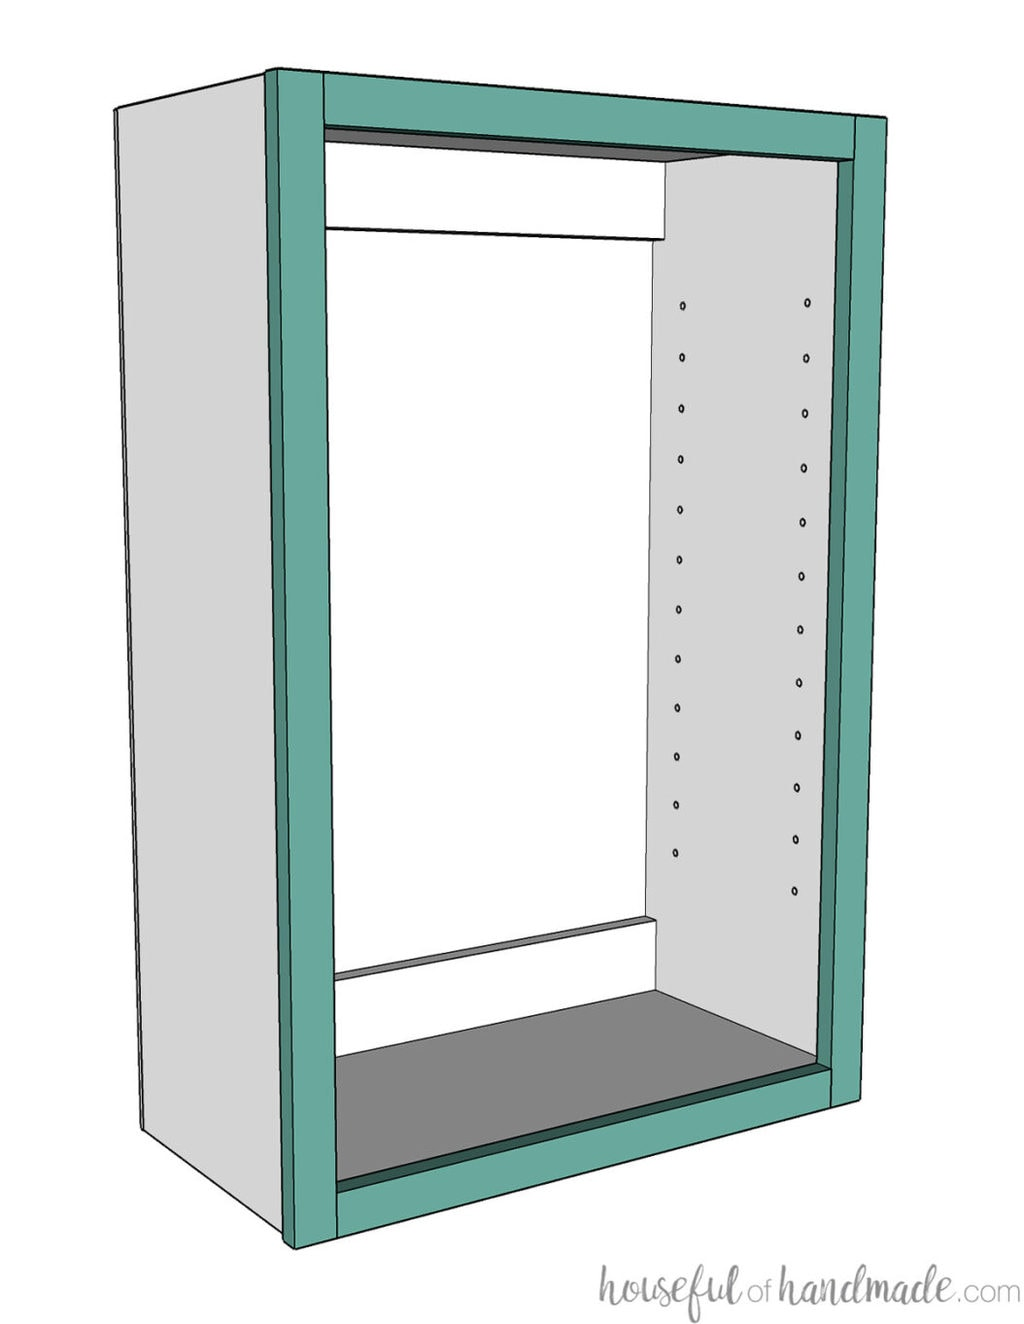 3D drawing of wall cabinet with holes for shelf pins in the side.